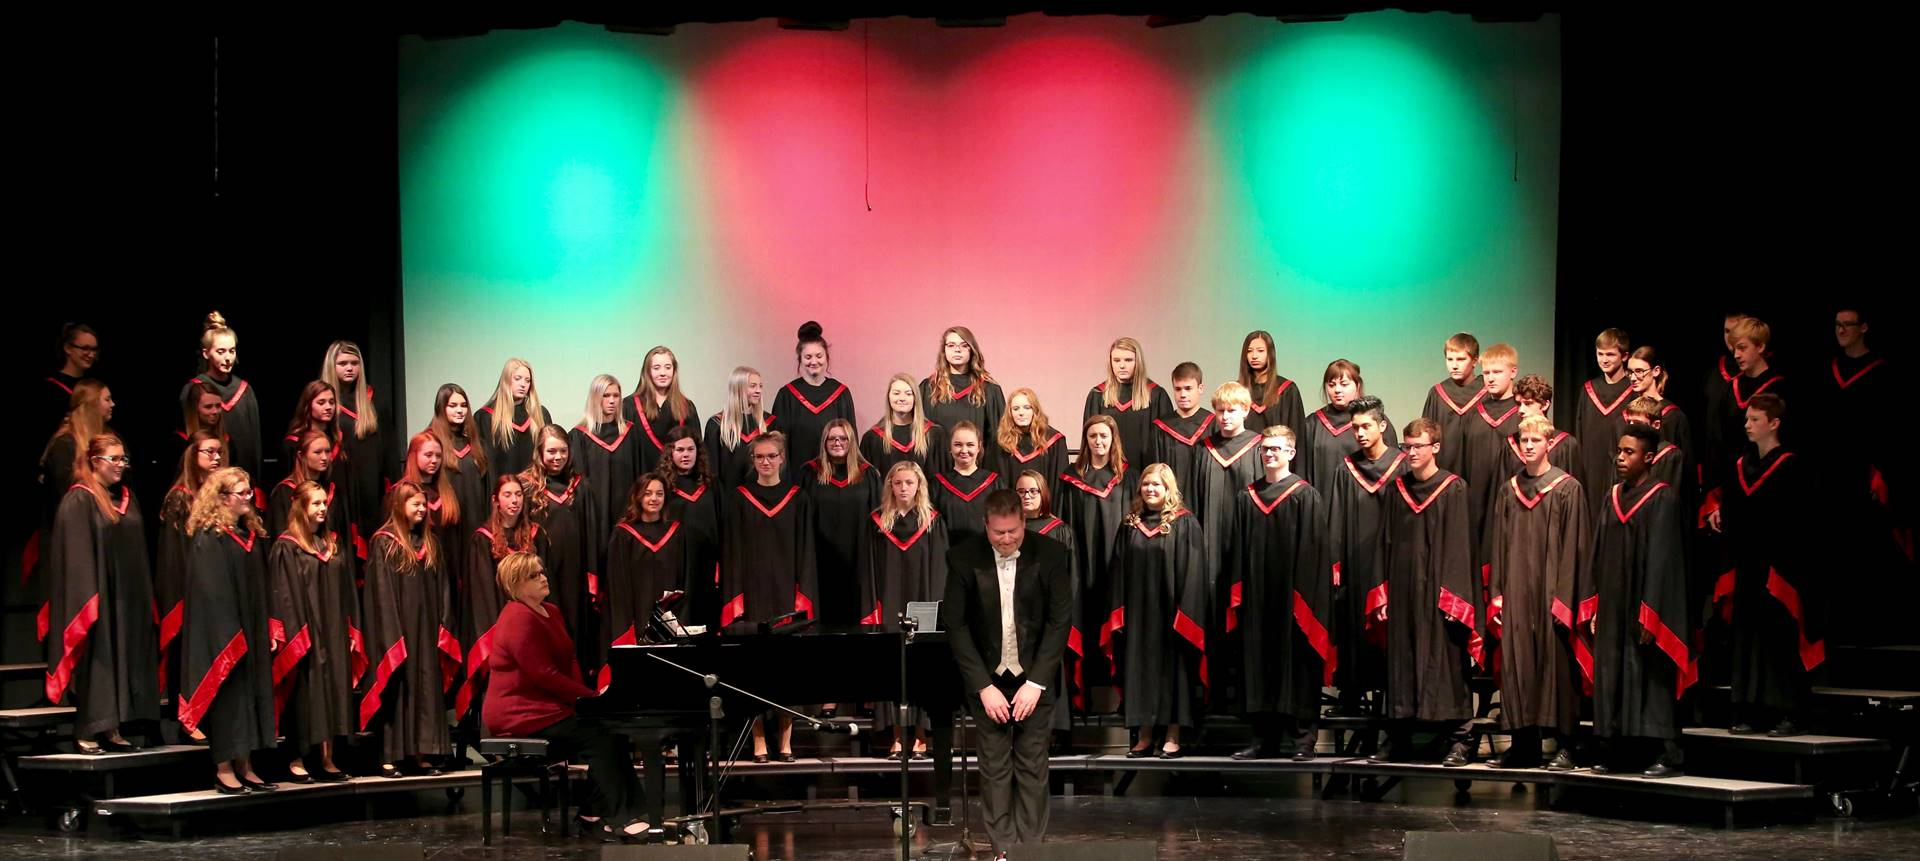 High school choir on risers